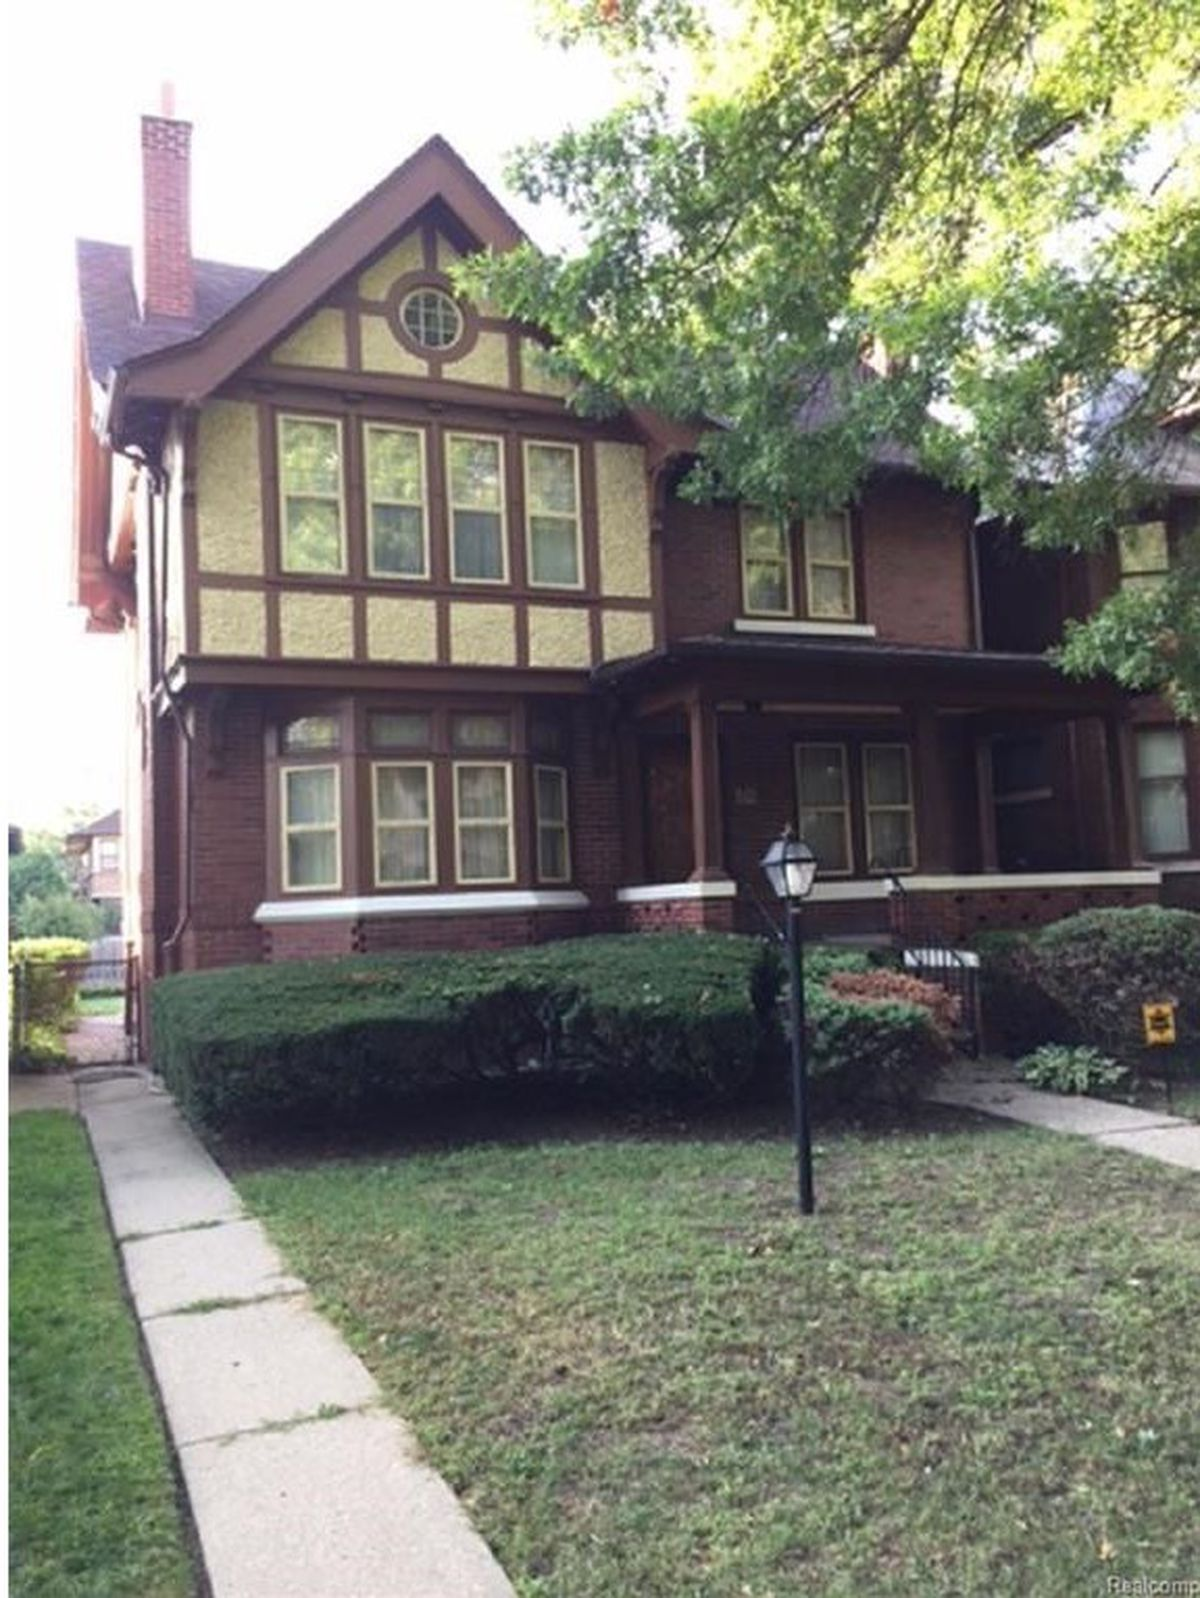 ... dollar amounts can buy around the city, and when we searched for homes  under $150,000, this one was a winner. This Boston-Edison house looked very  lived ...